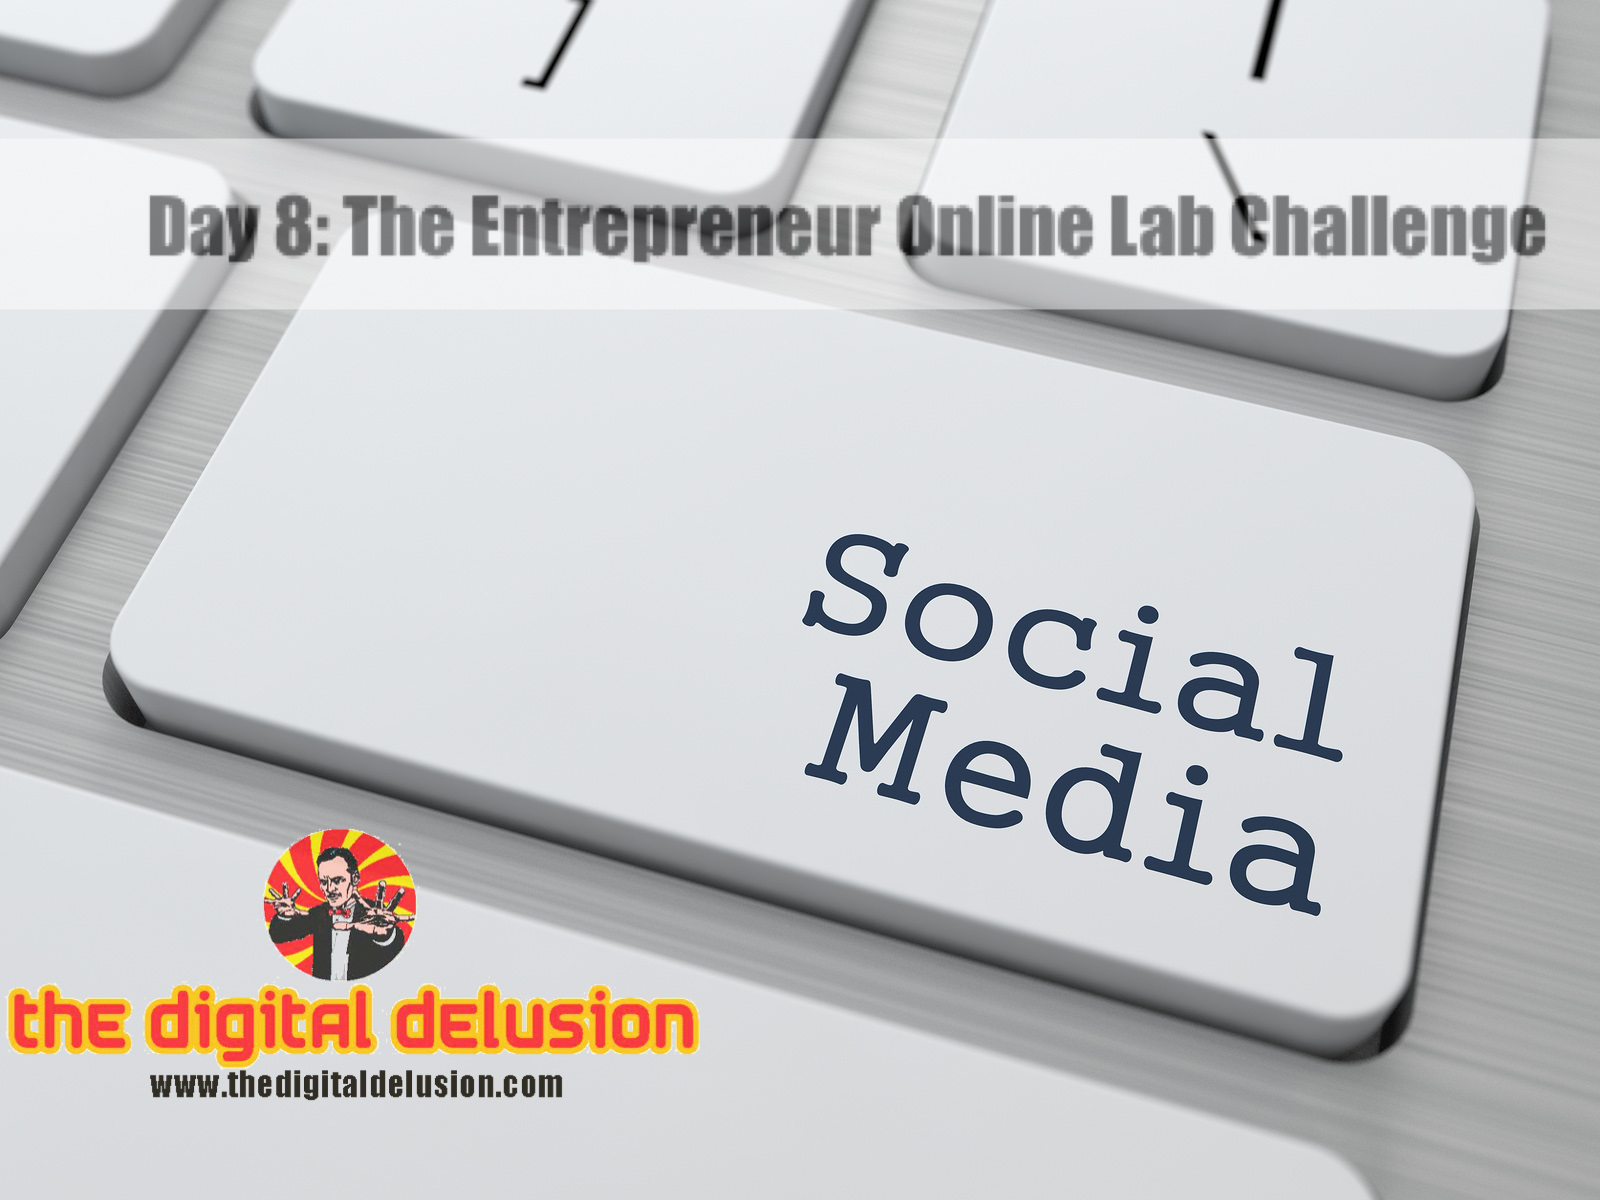 Day 8 The Entrepreneur Online Lab Challenge by The Digital Delusion